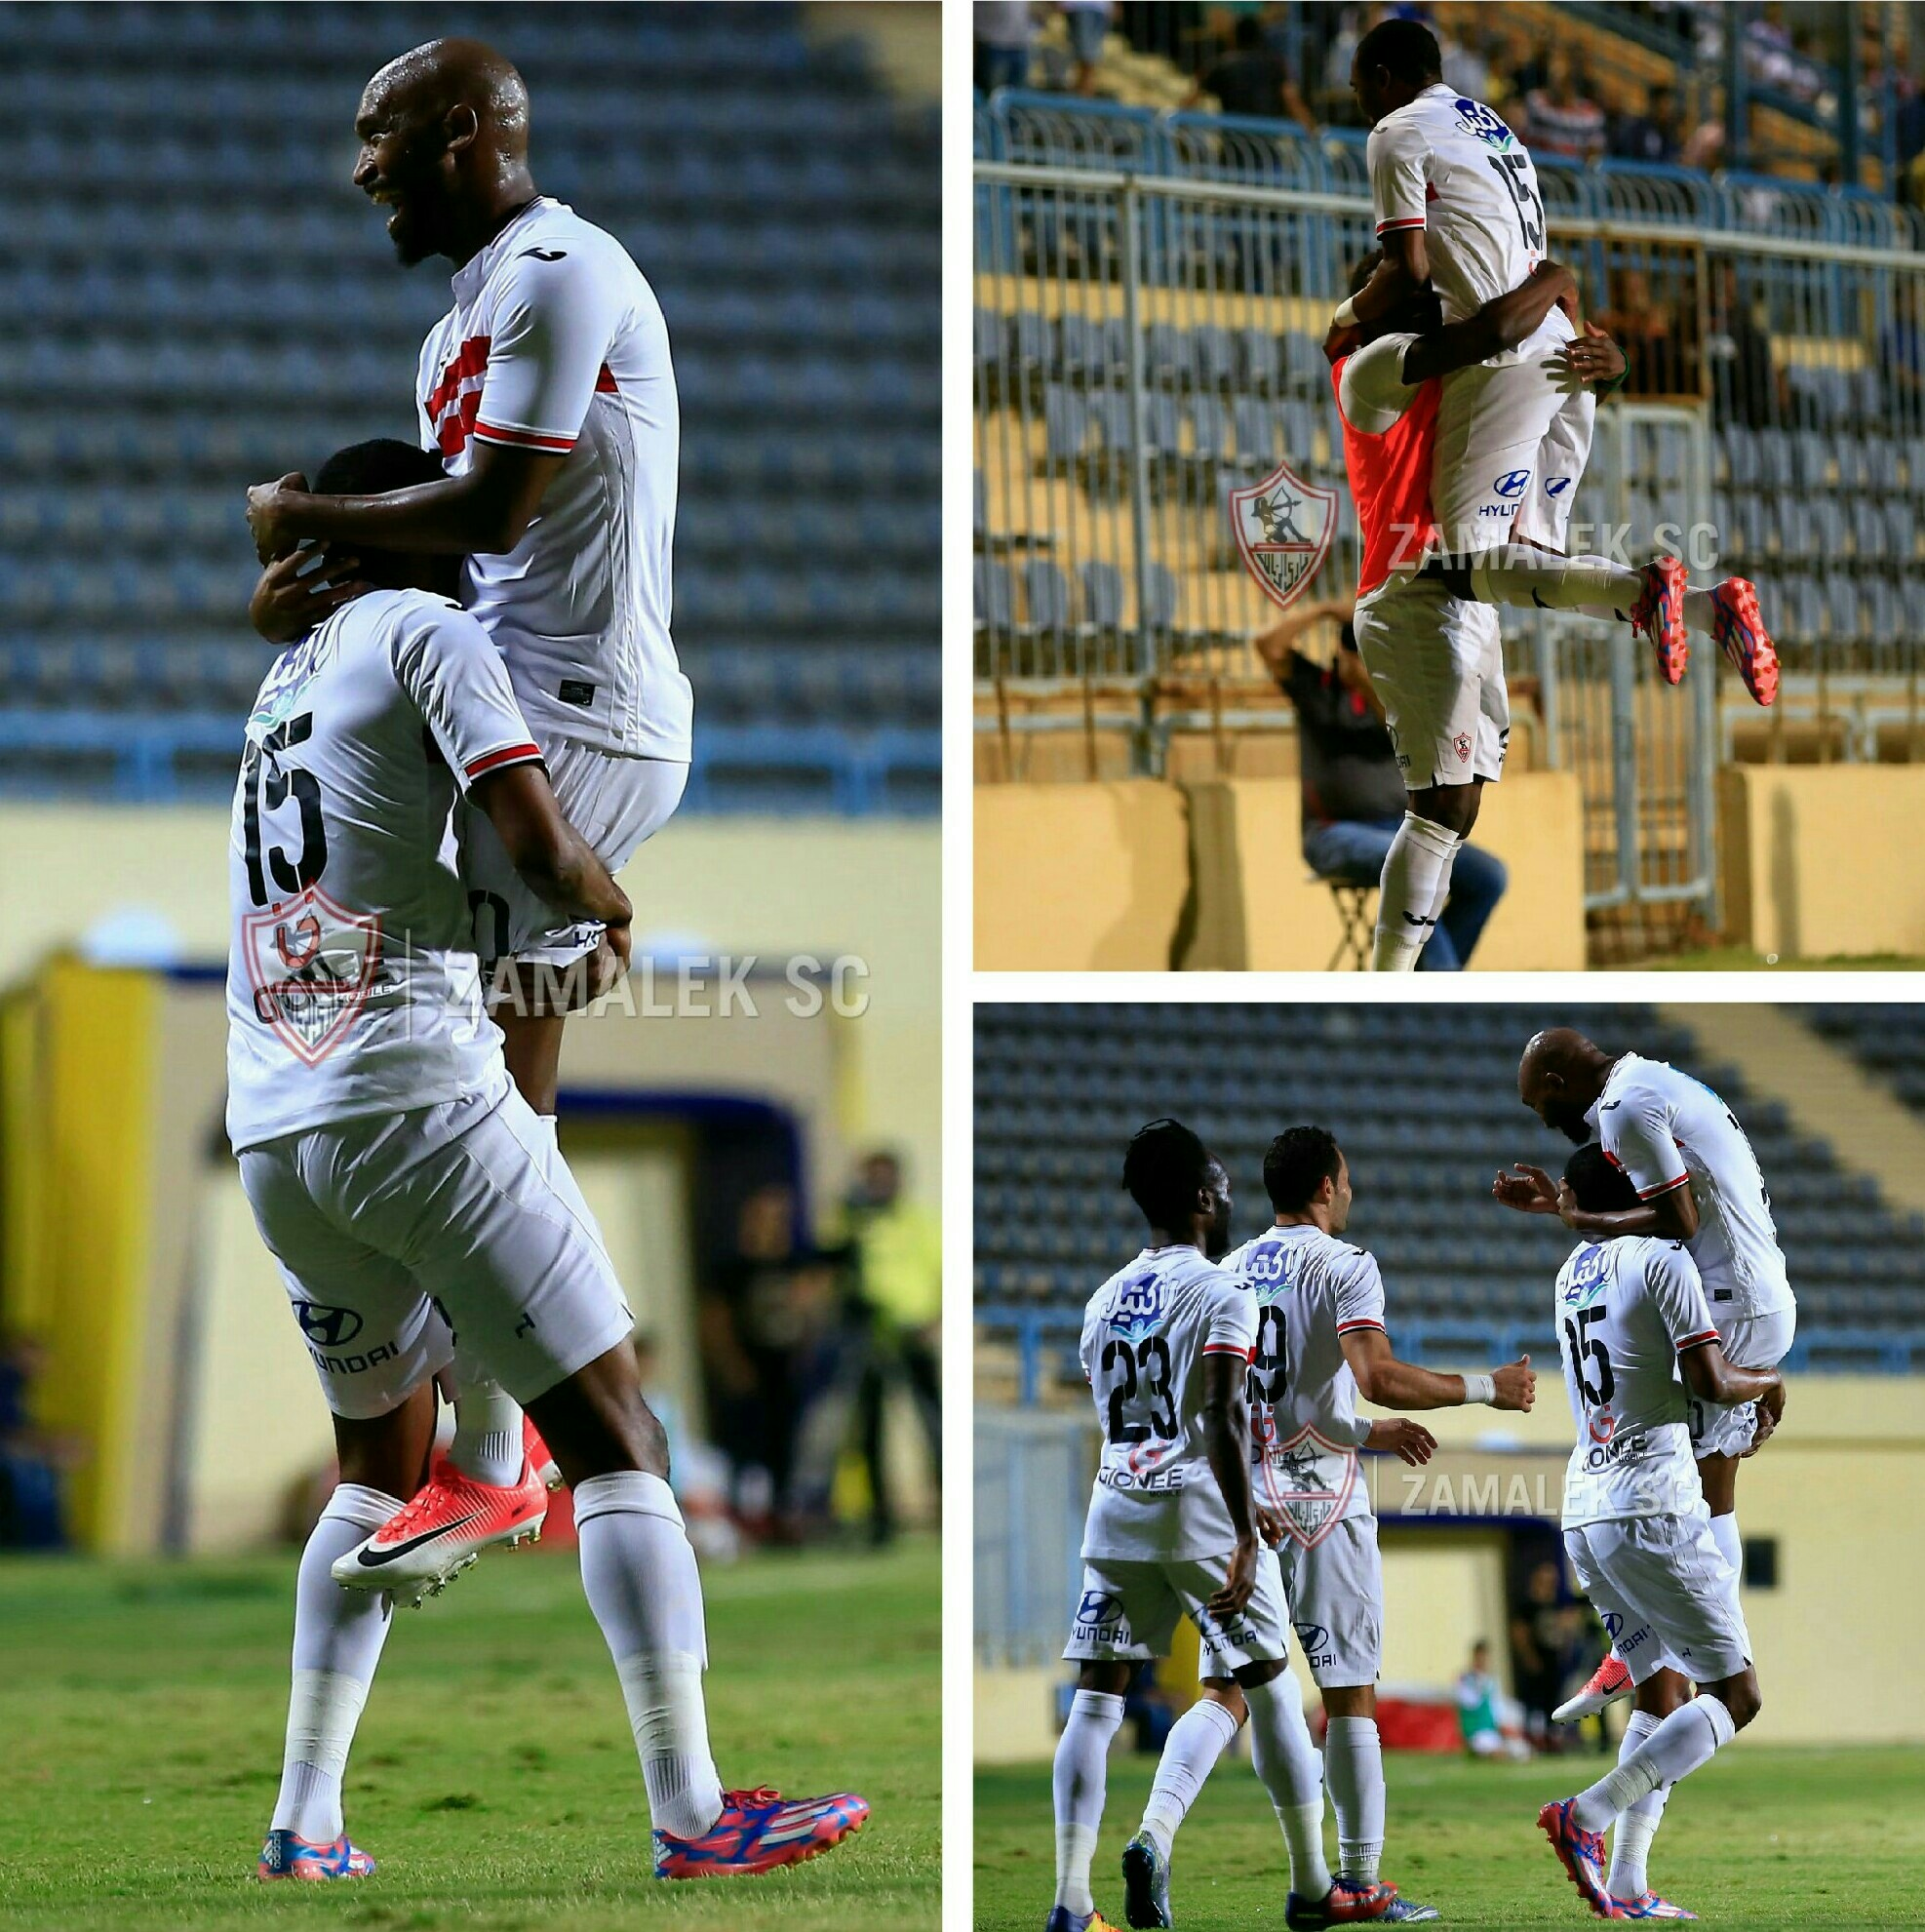 Ohawuchi, Yussuf On Target In Zamalek's 2-0 Win